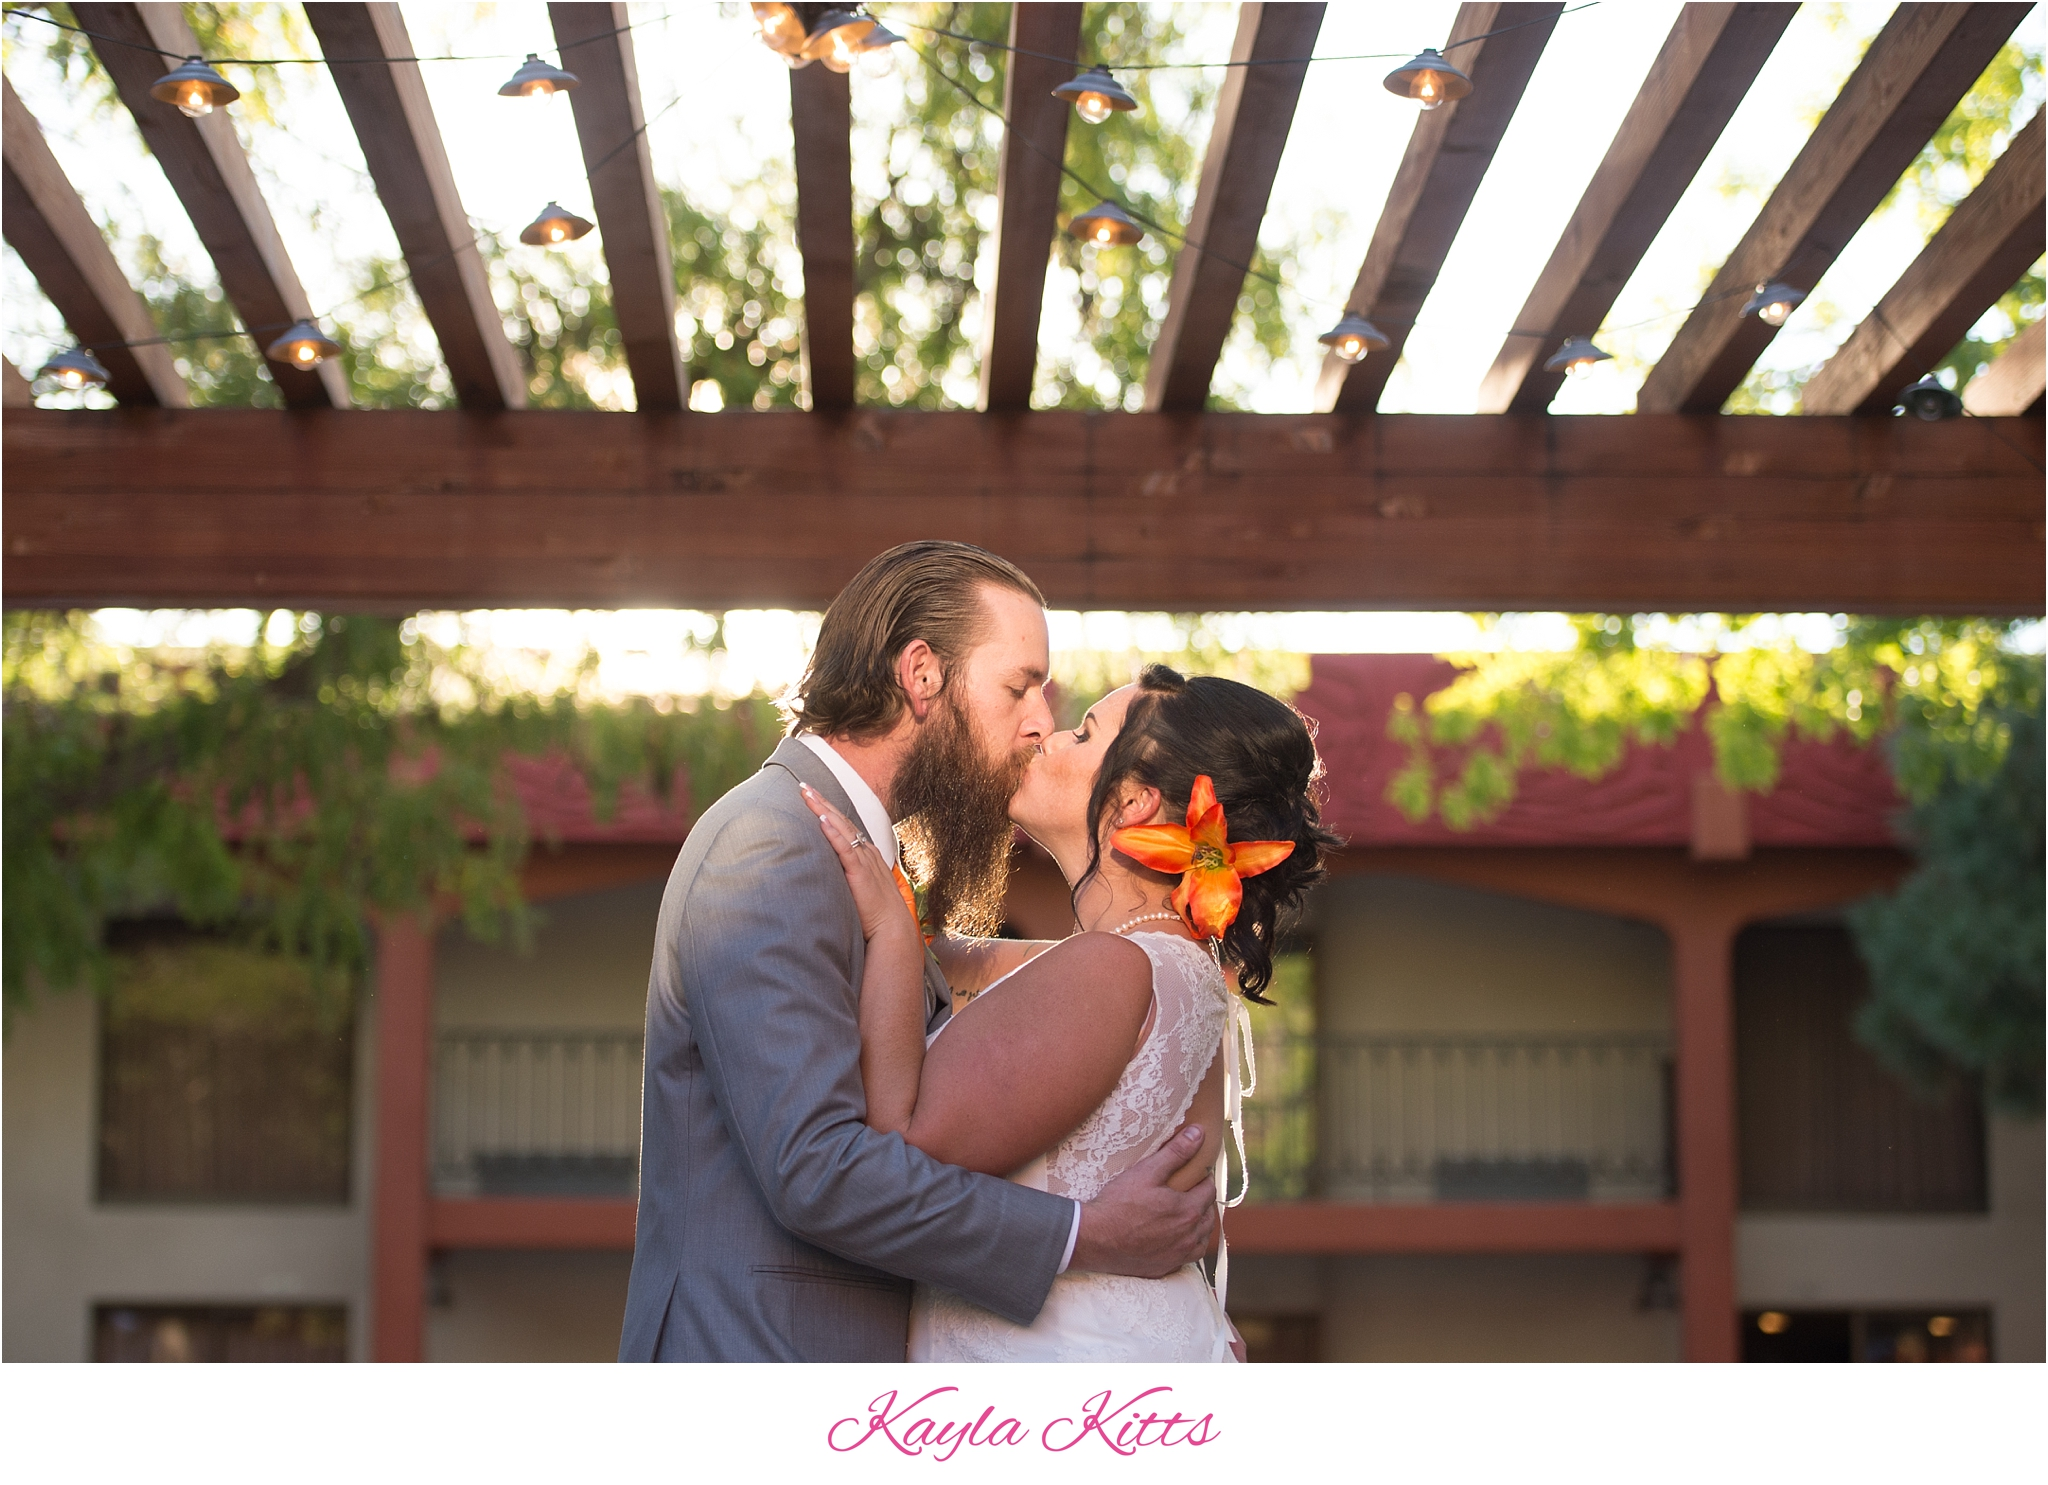 kayla kitts photography - albuquerque wedding photographer - albuquerque wedding photography - albuquerque venue - casa de suenos - hotel albuquerque wedding - new mexico wedding photographer - los poblanos wedding_0010.jpeg